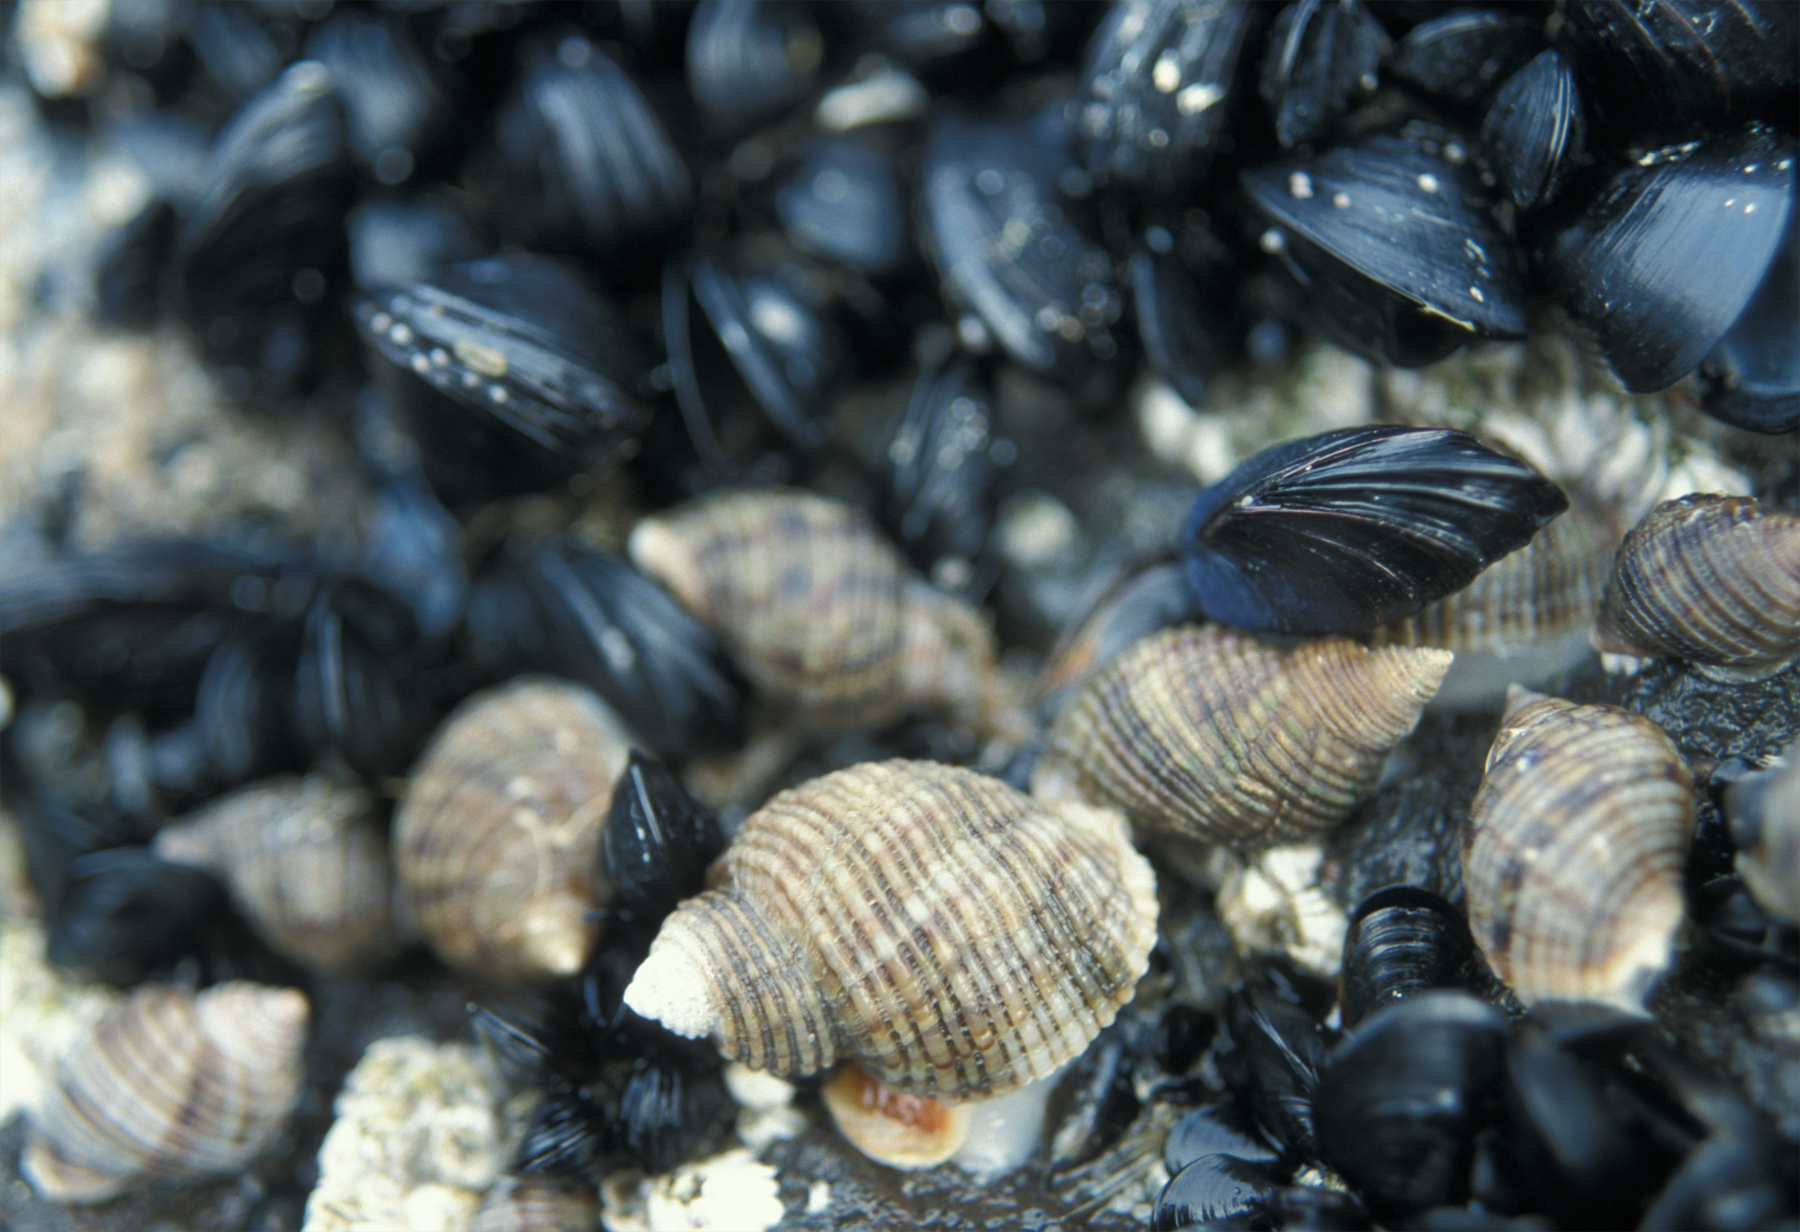 Are community dynamics influenced by natural selection on the traits of drilling snails ( Nucella canaliculata )? Photo: Eric Sanford.